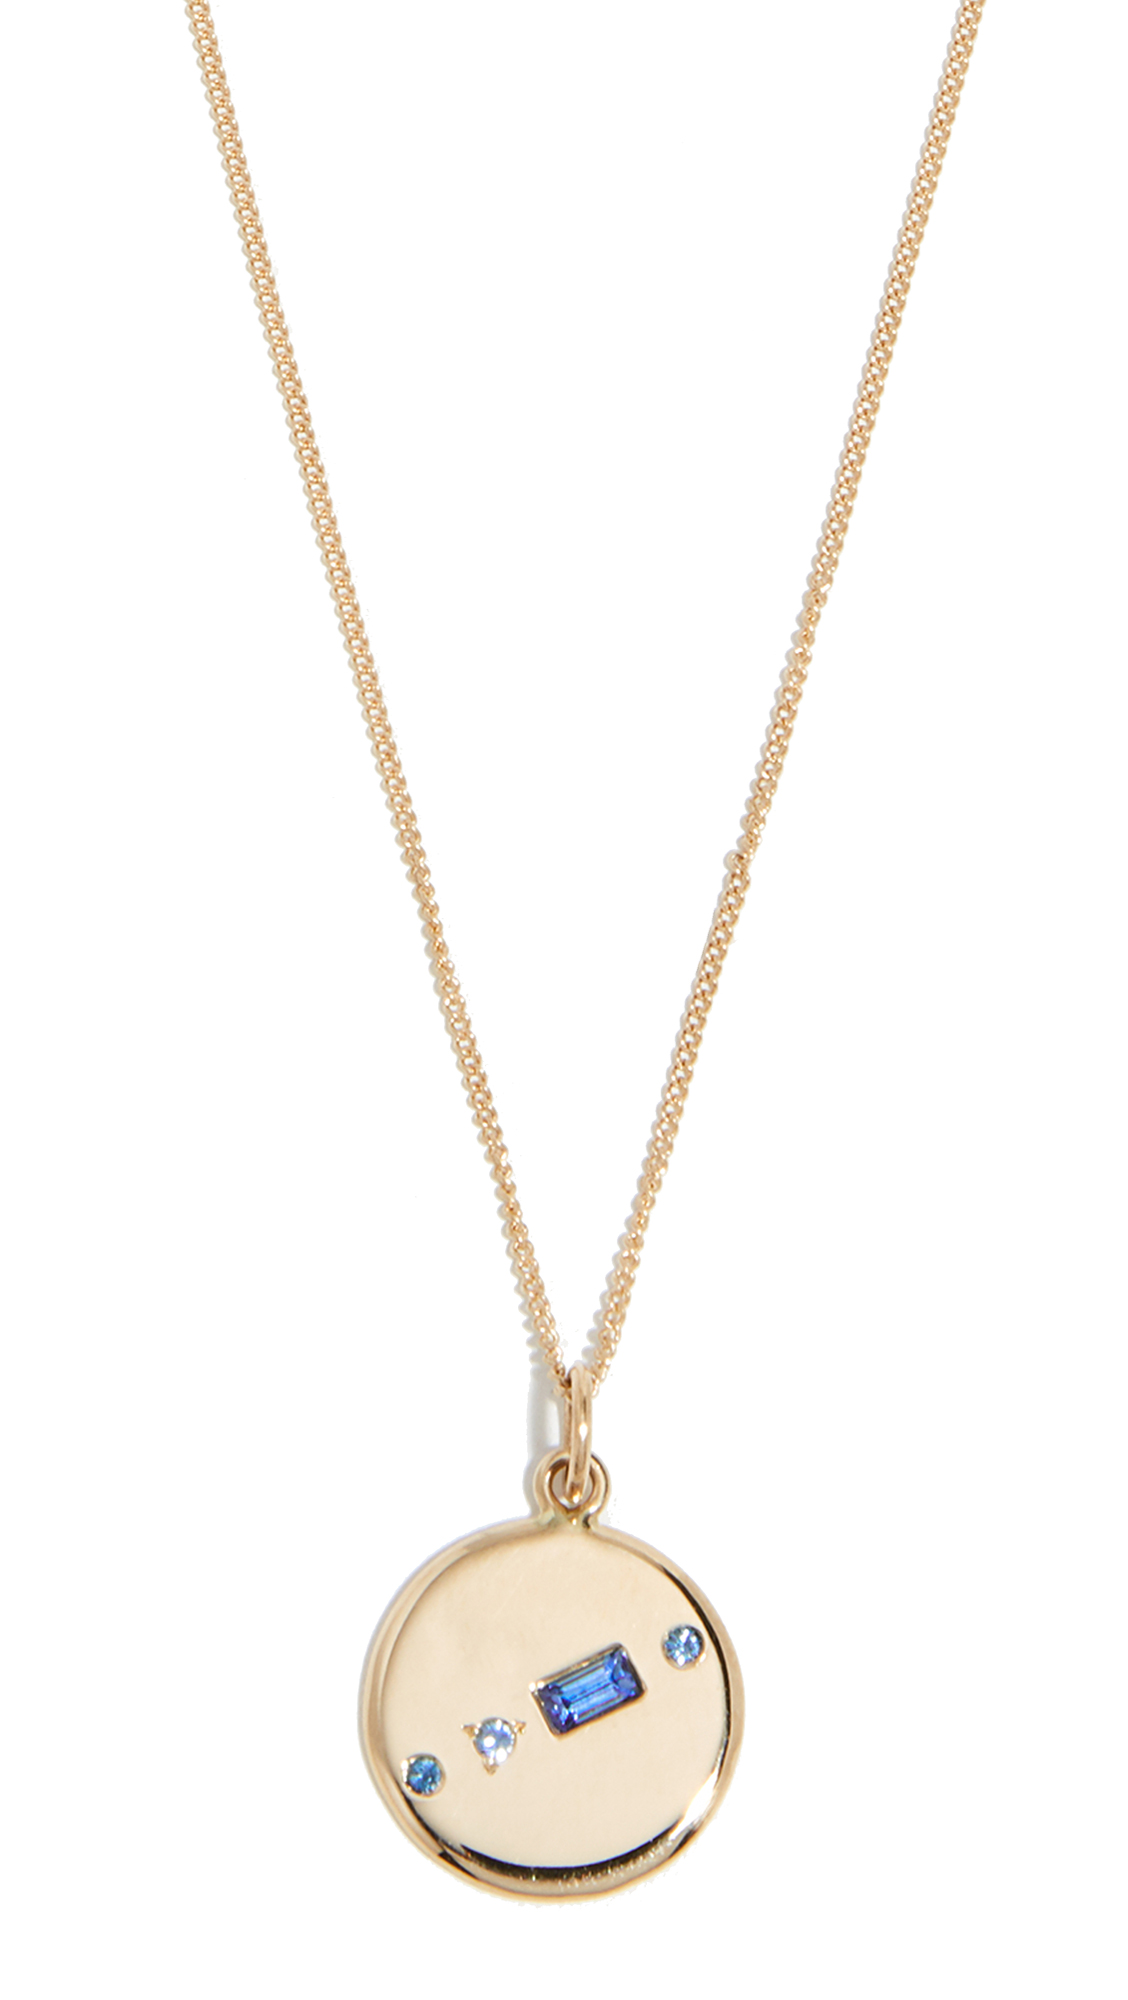 WWAKE 14K Small Medallion Necklace in Sapphire